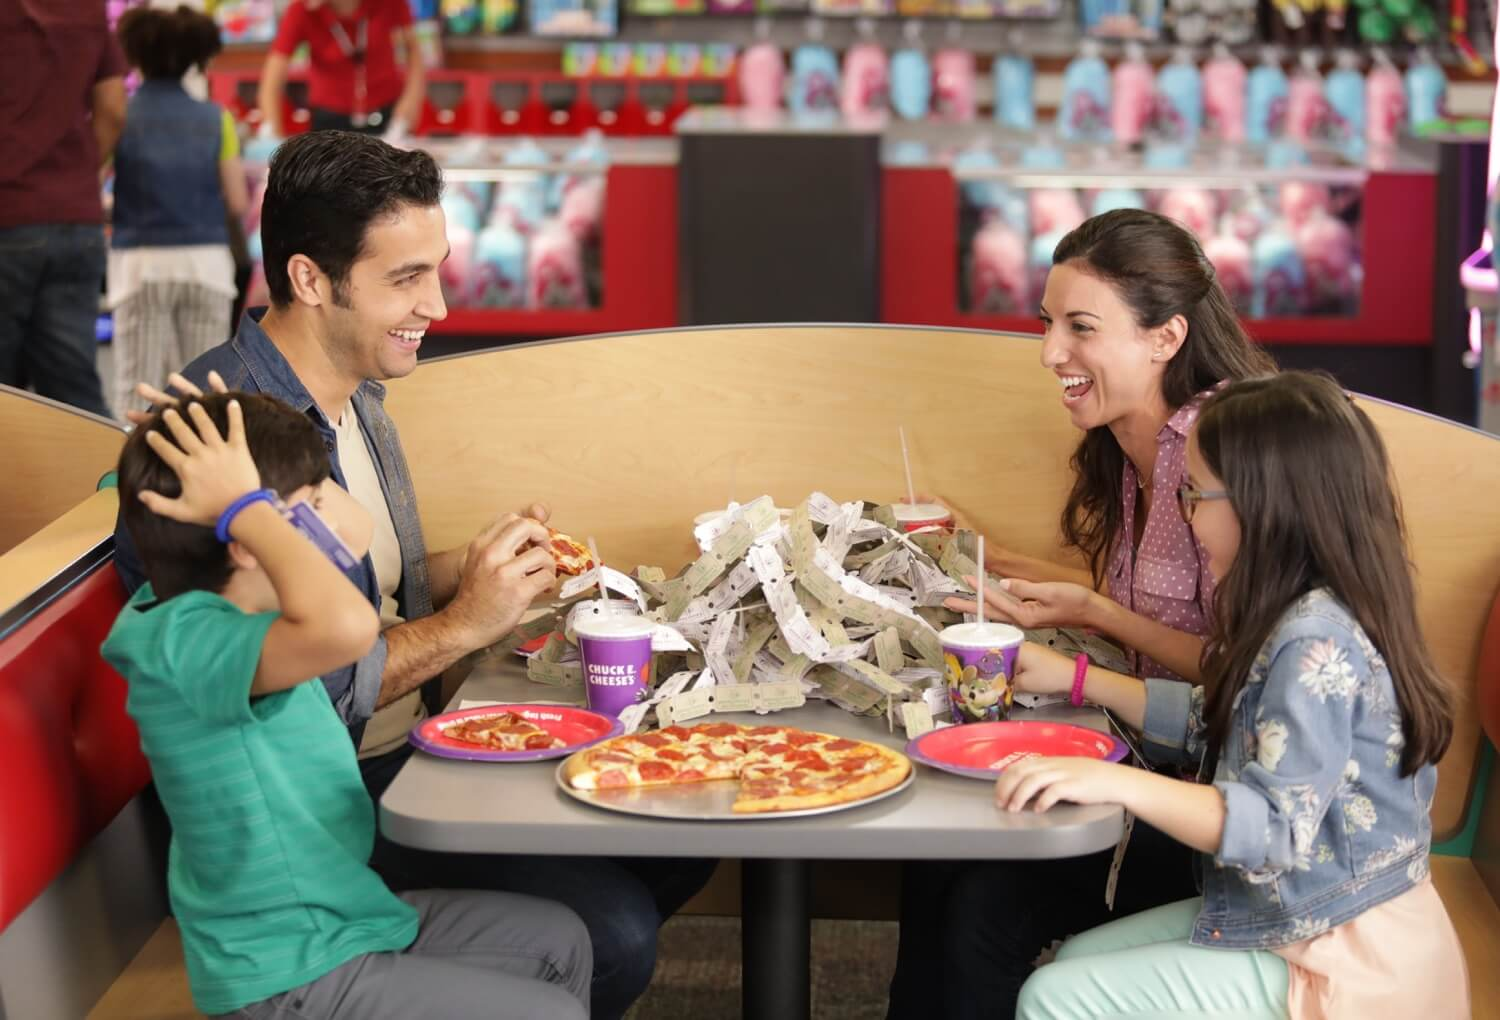 Family eating dinner with pizza and tickets on table